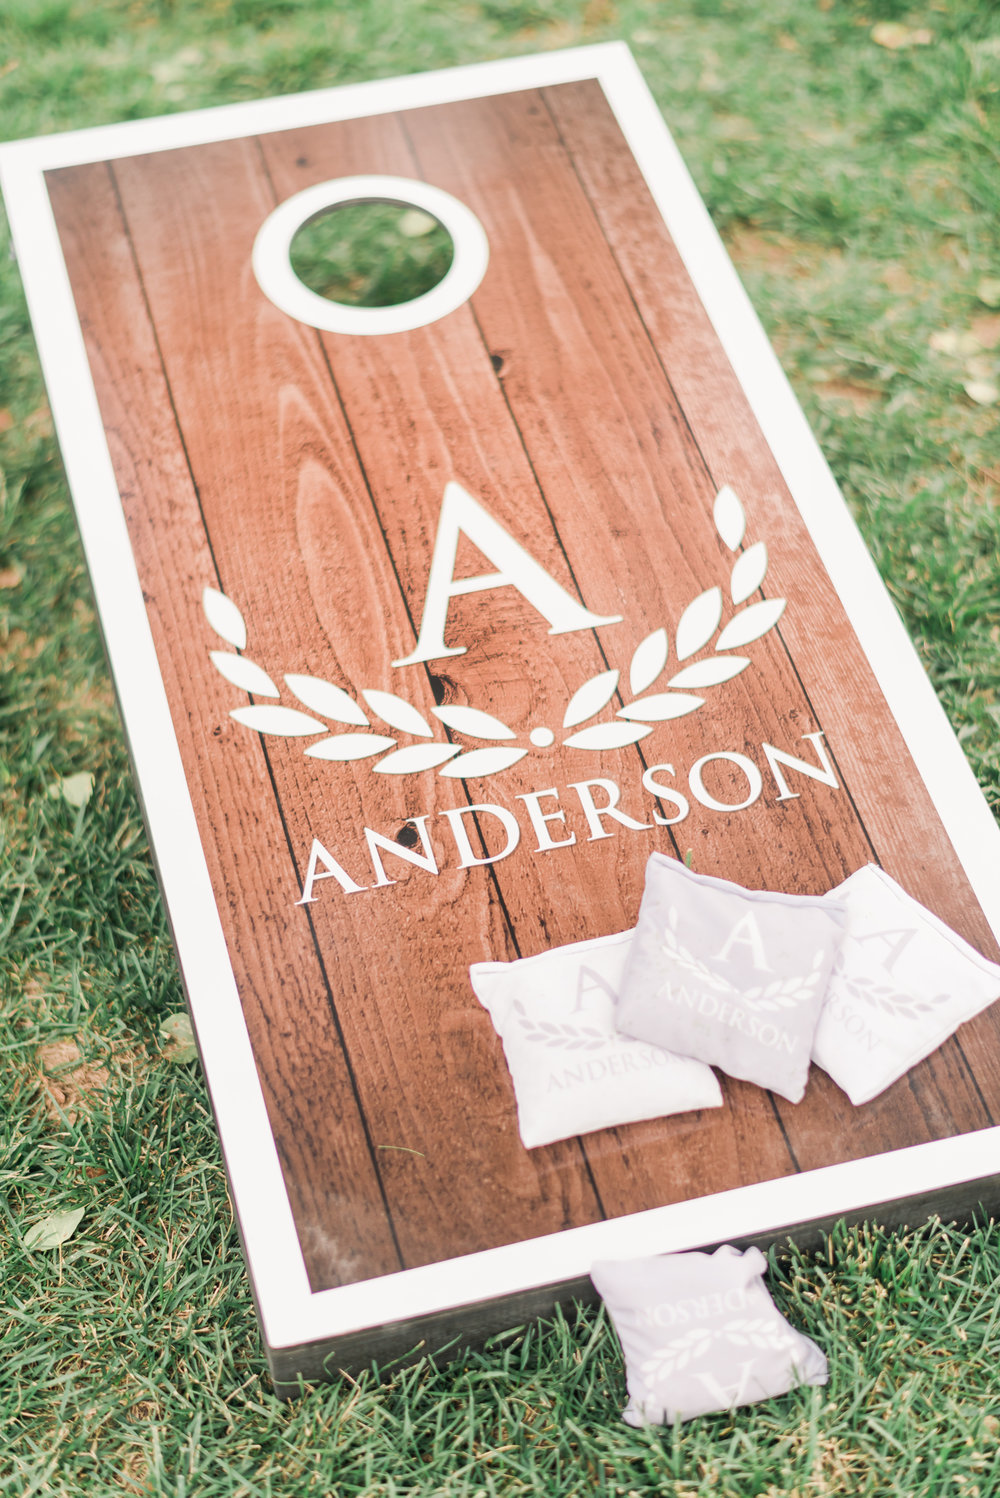 Pre-ceremony and cocktail hour corn hole boards. Custom boards by: Victory Tailgate